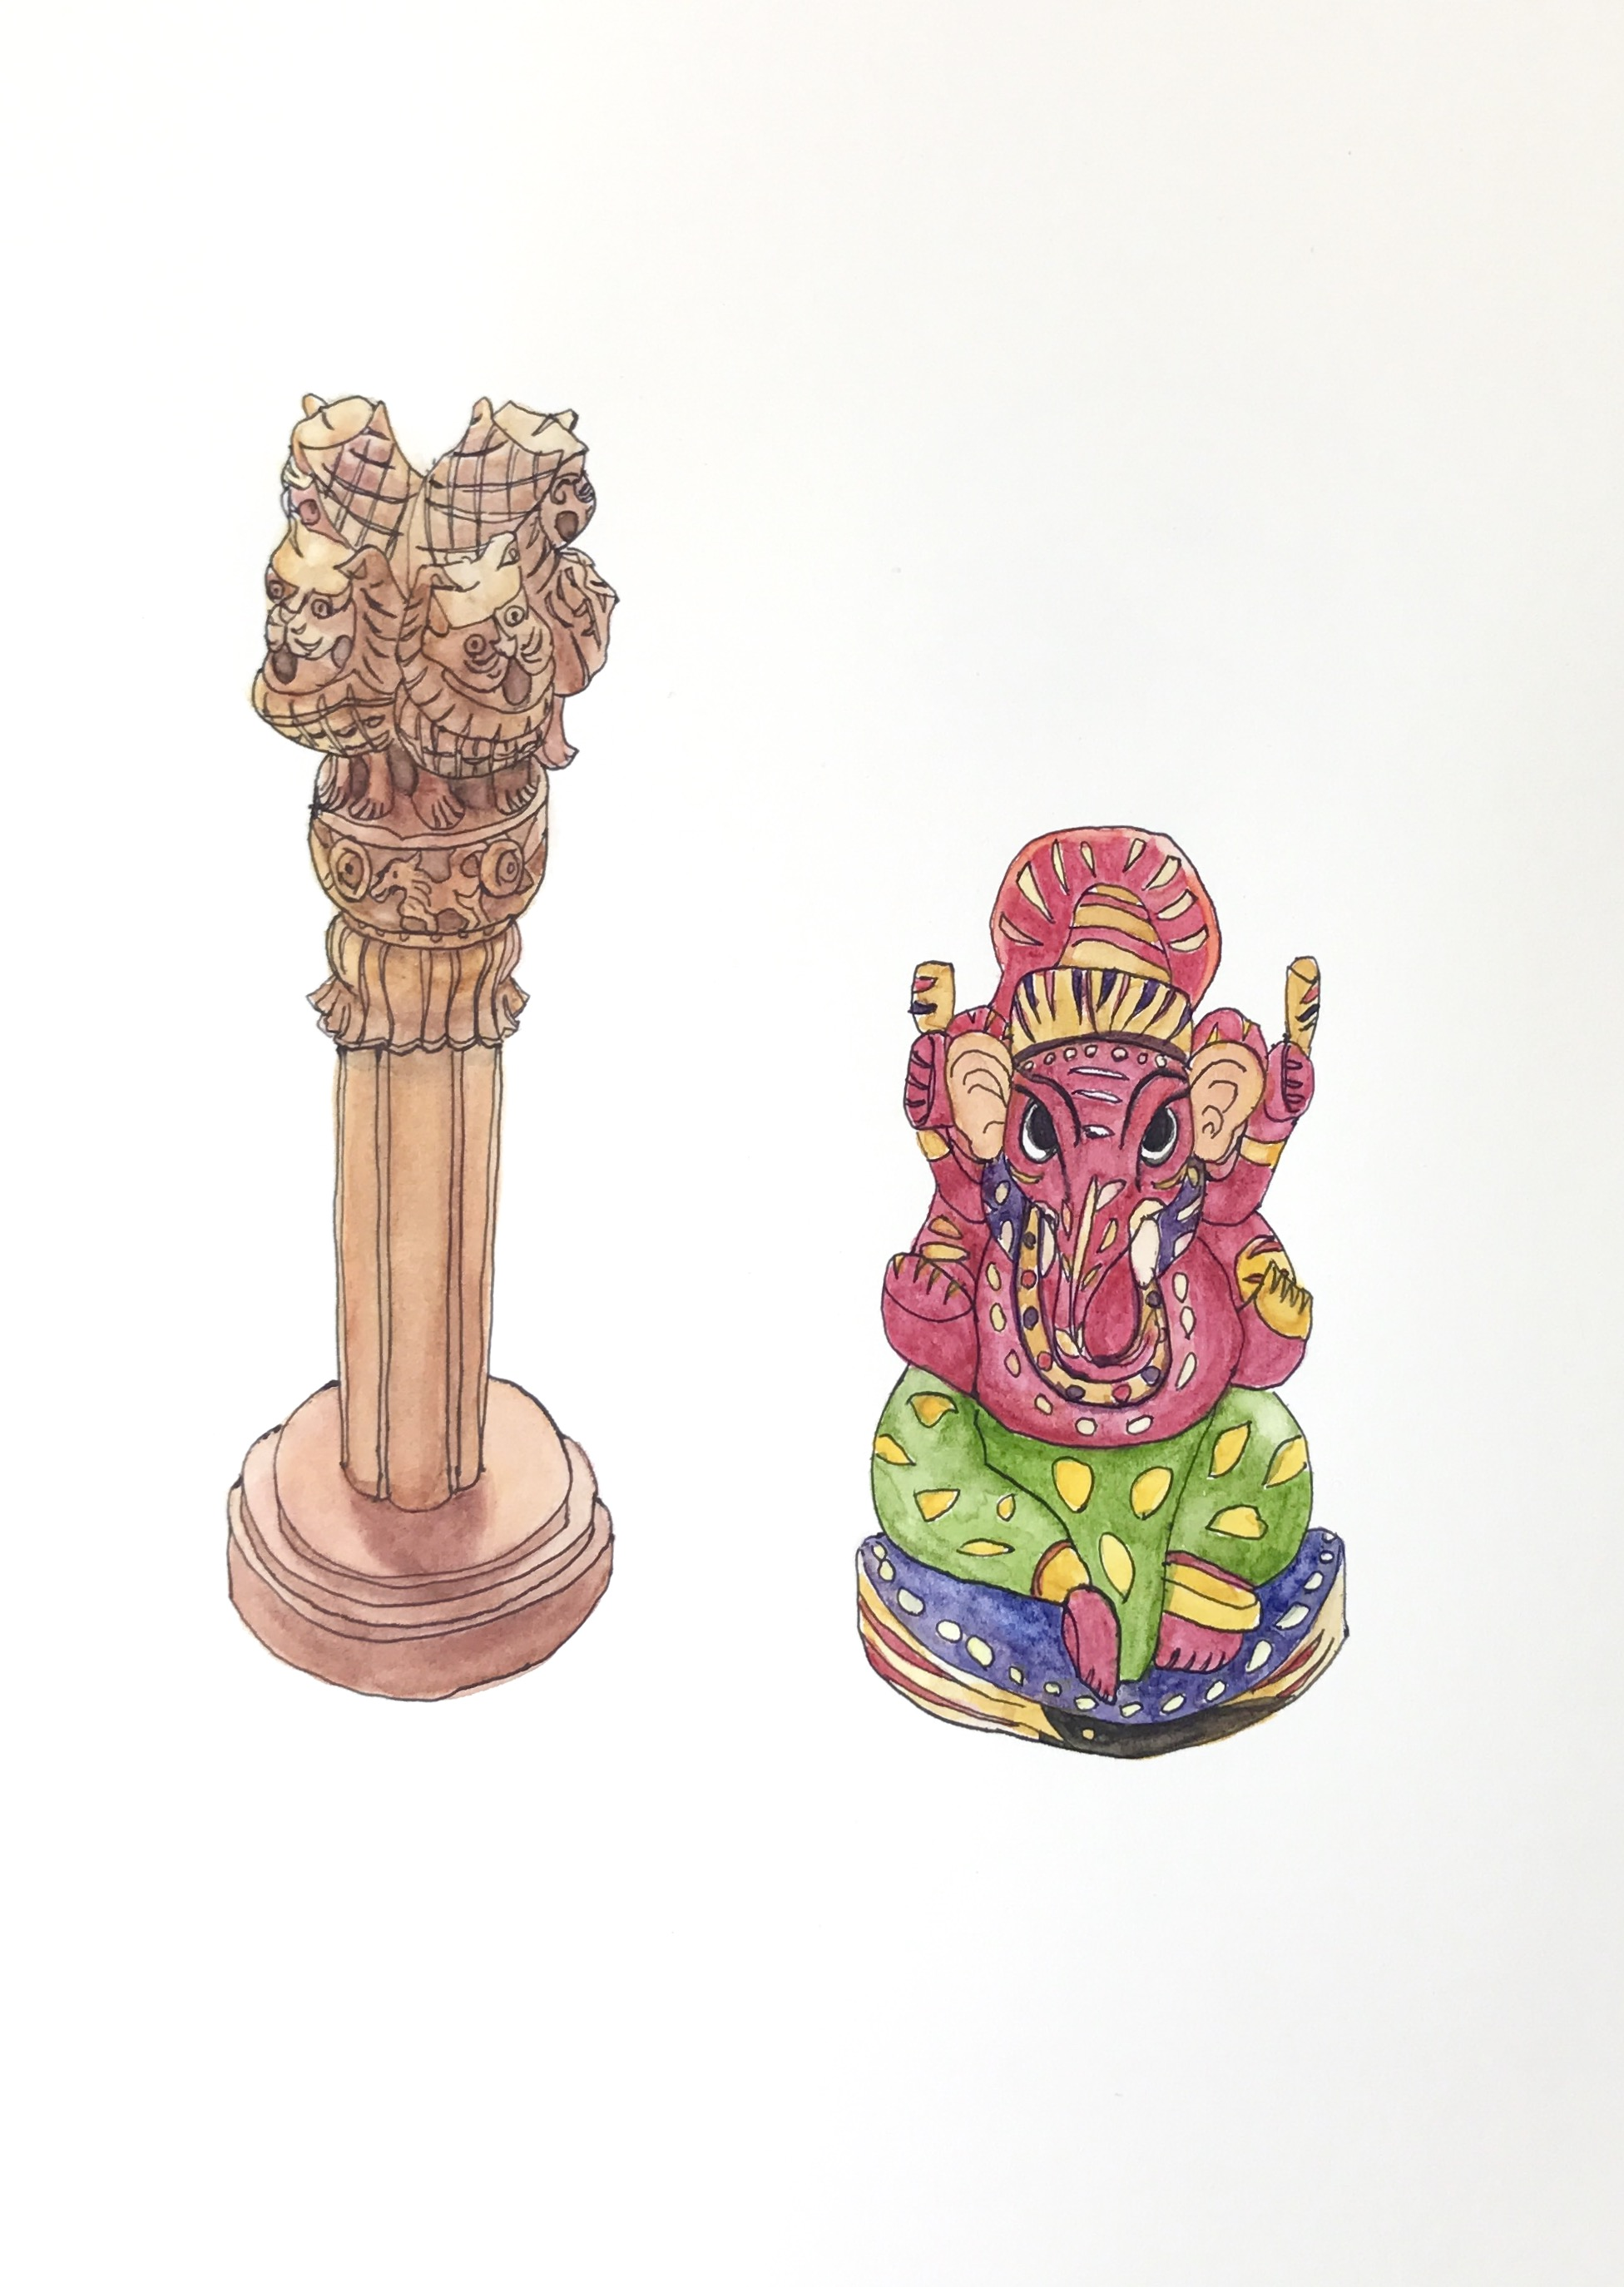 wood carvings from India